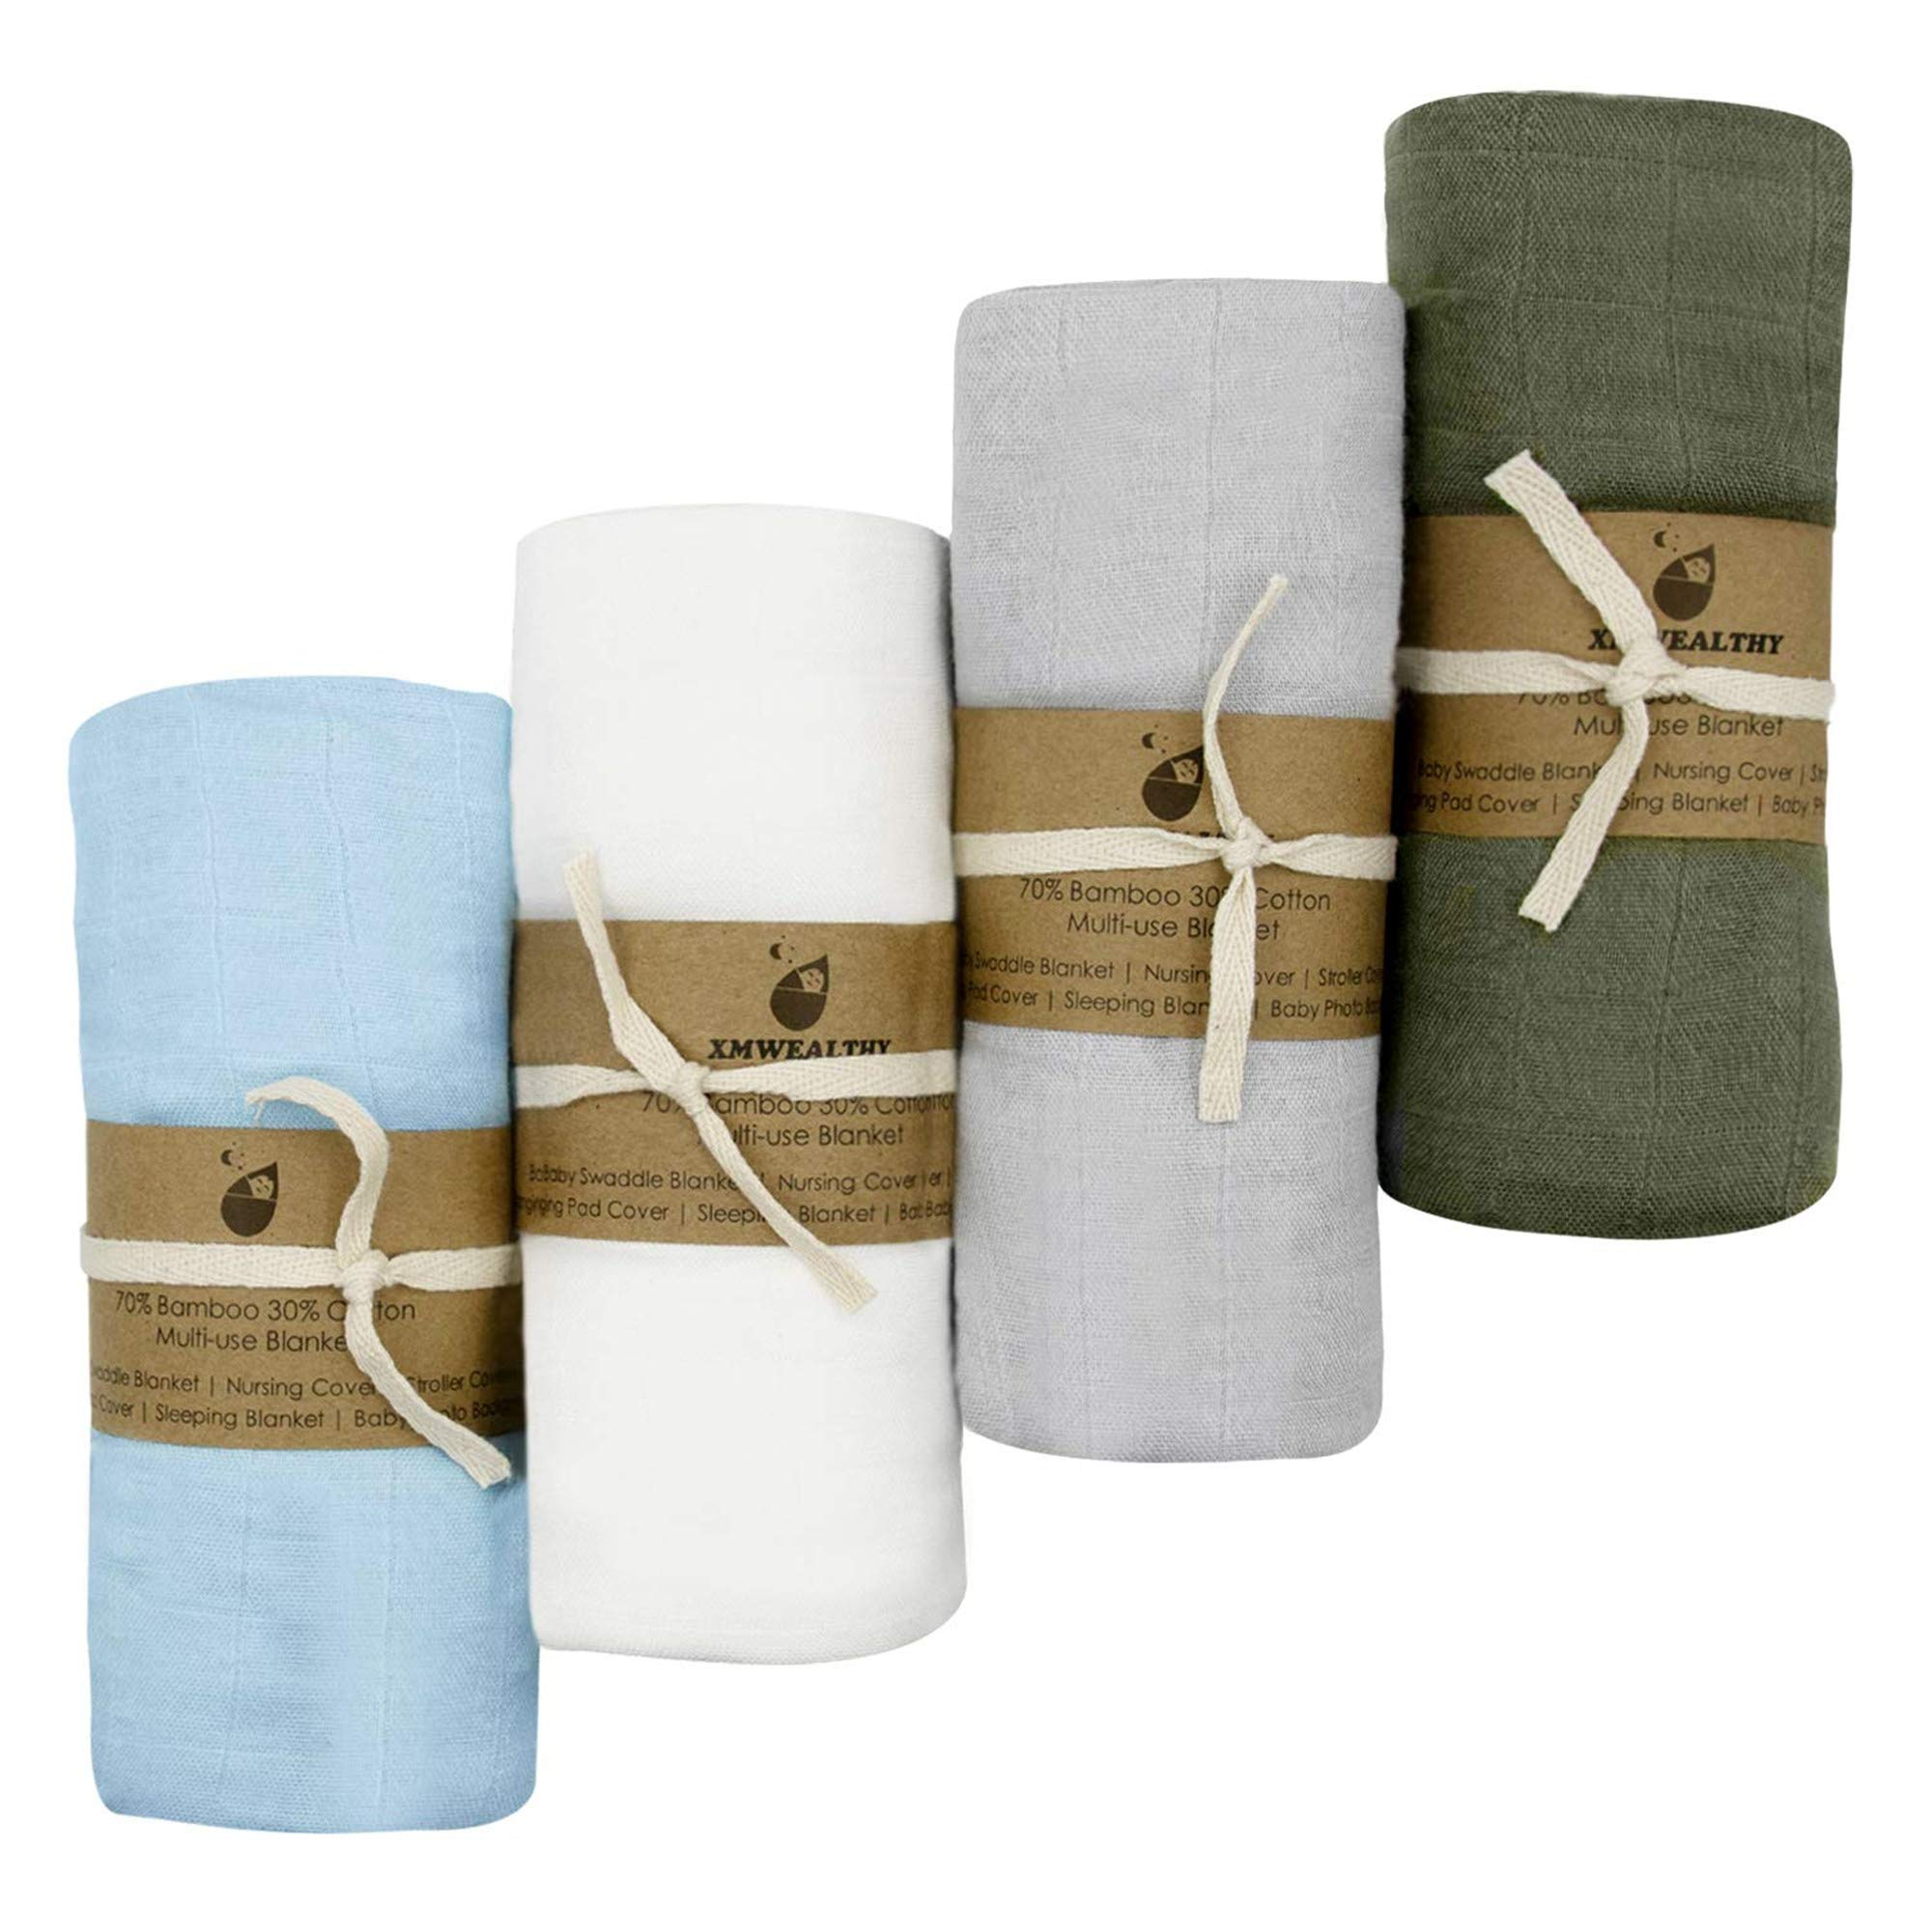 """XMWEALTHY 4 Packs Soft Swaddle Blankets Sets 47"""" x 47"""" Organic Baby Receiving Blankets Muslin Baby Wraps Sets for Boys & Girls Ideal Newborn Gifts"""